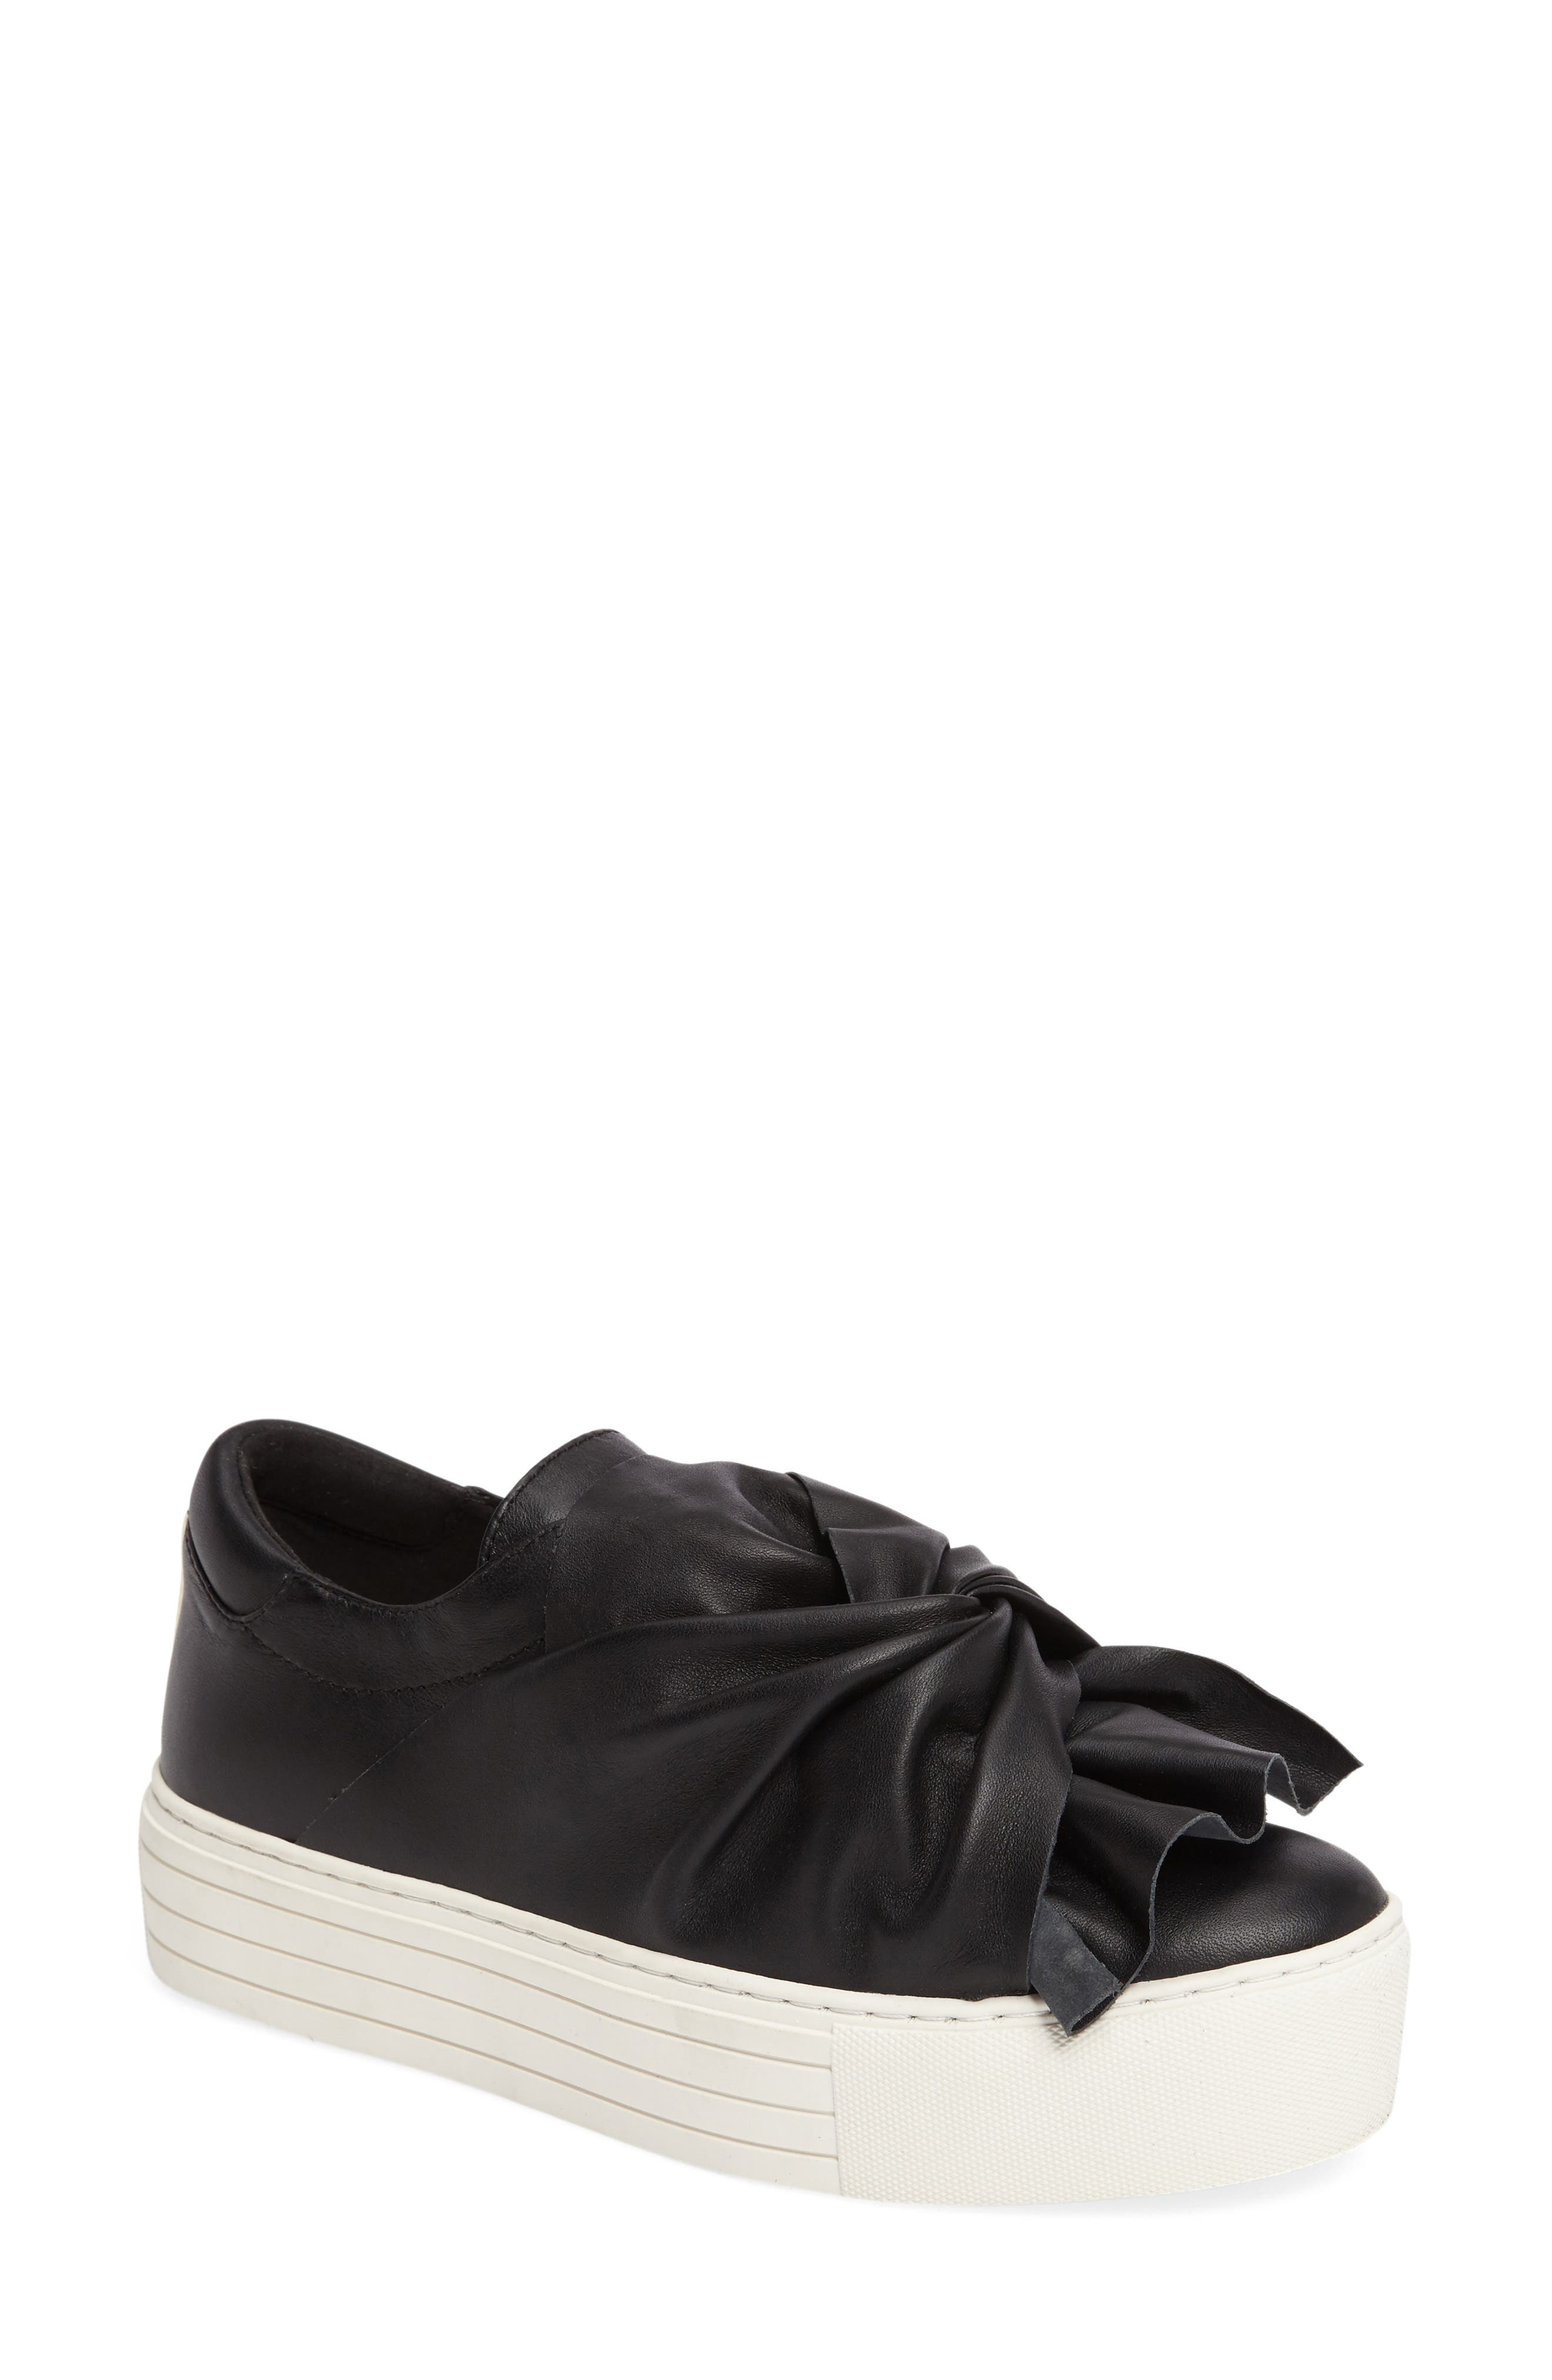 KENNETH COLE NEW YORK Kenneth Cole Aaron Twisted Knot Flatform Sneaker, Main, color, 001